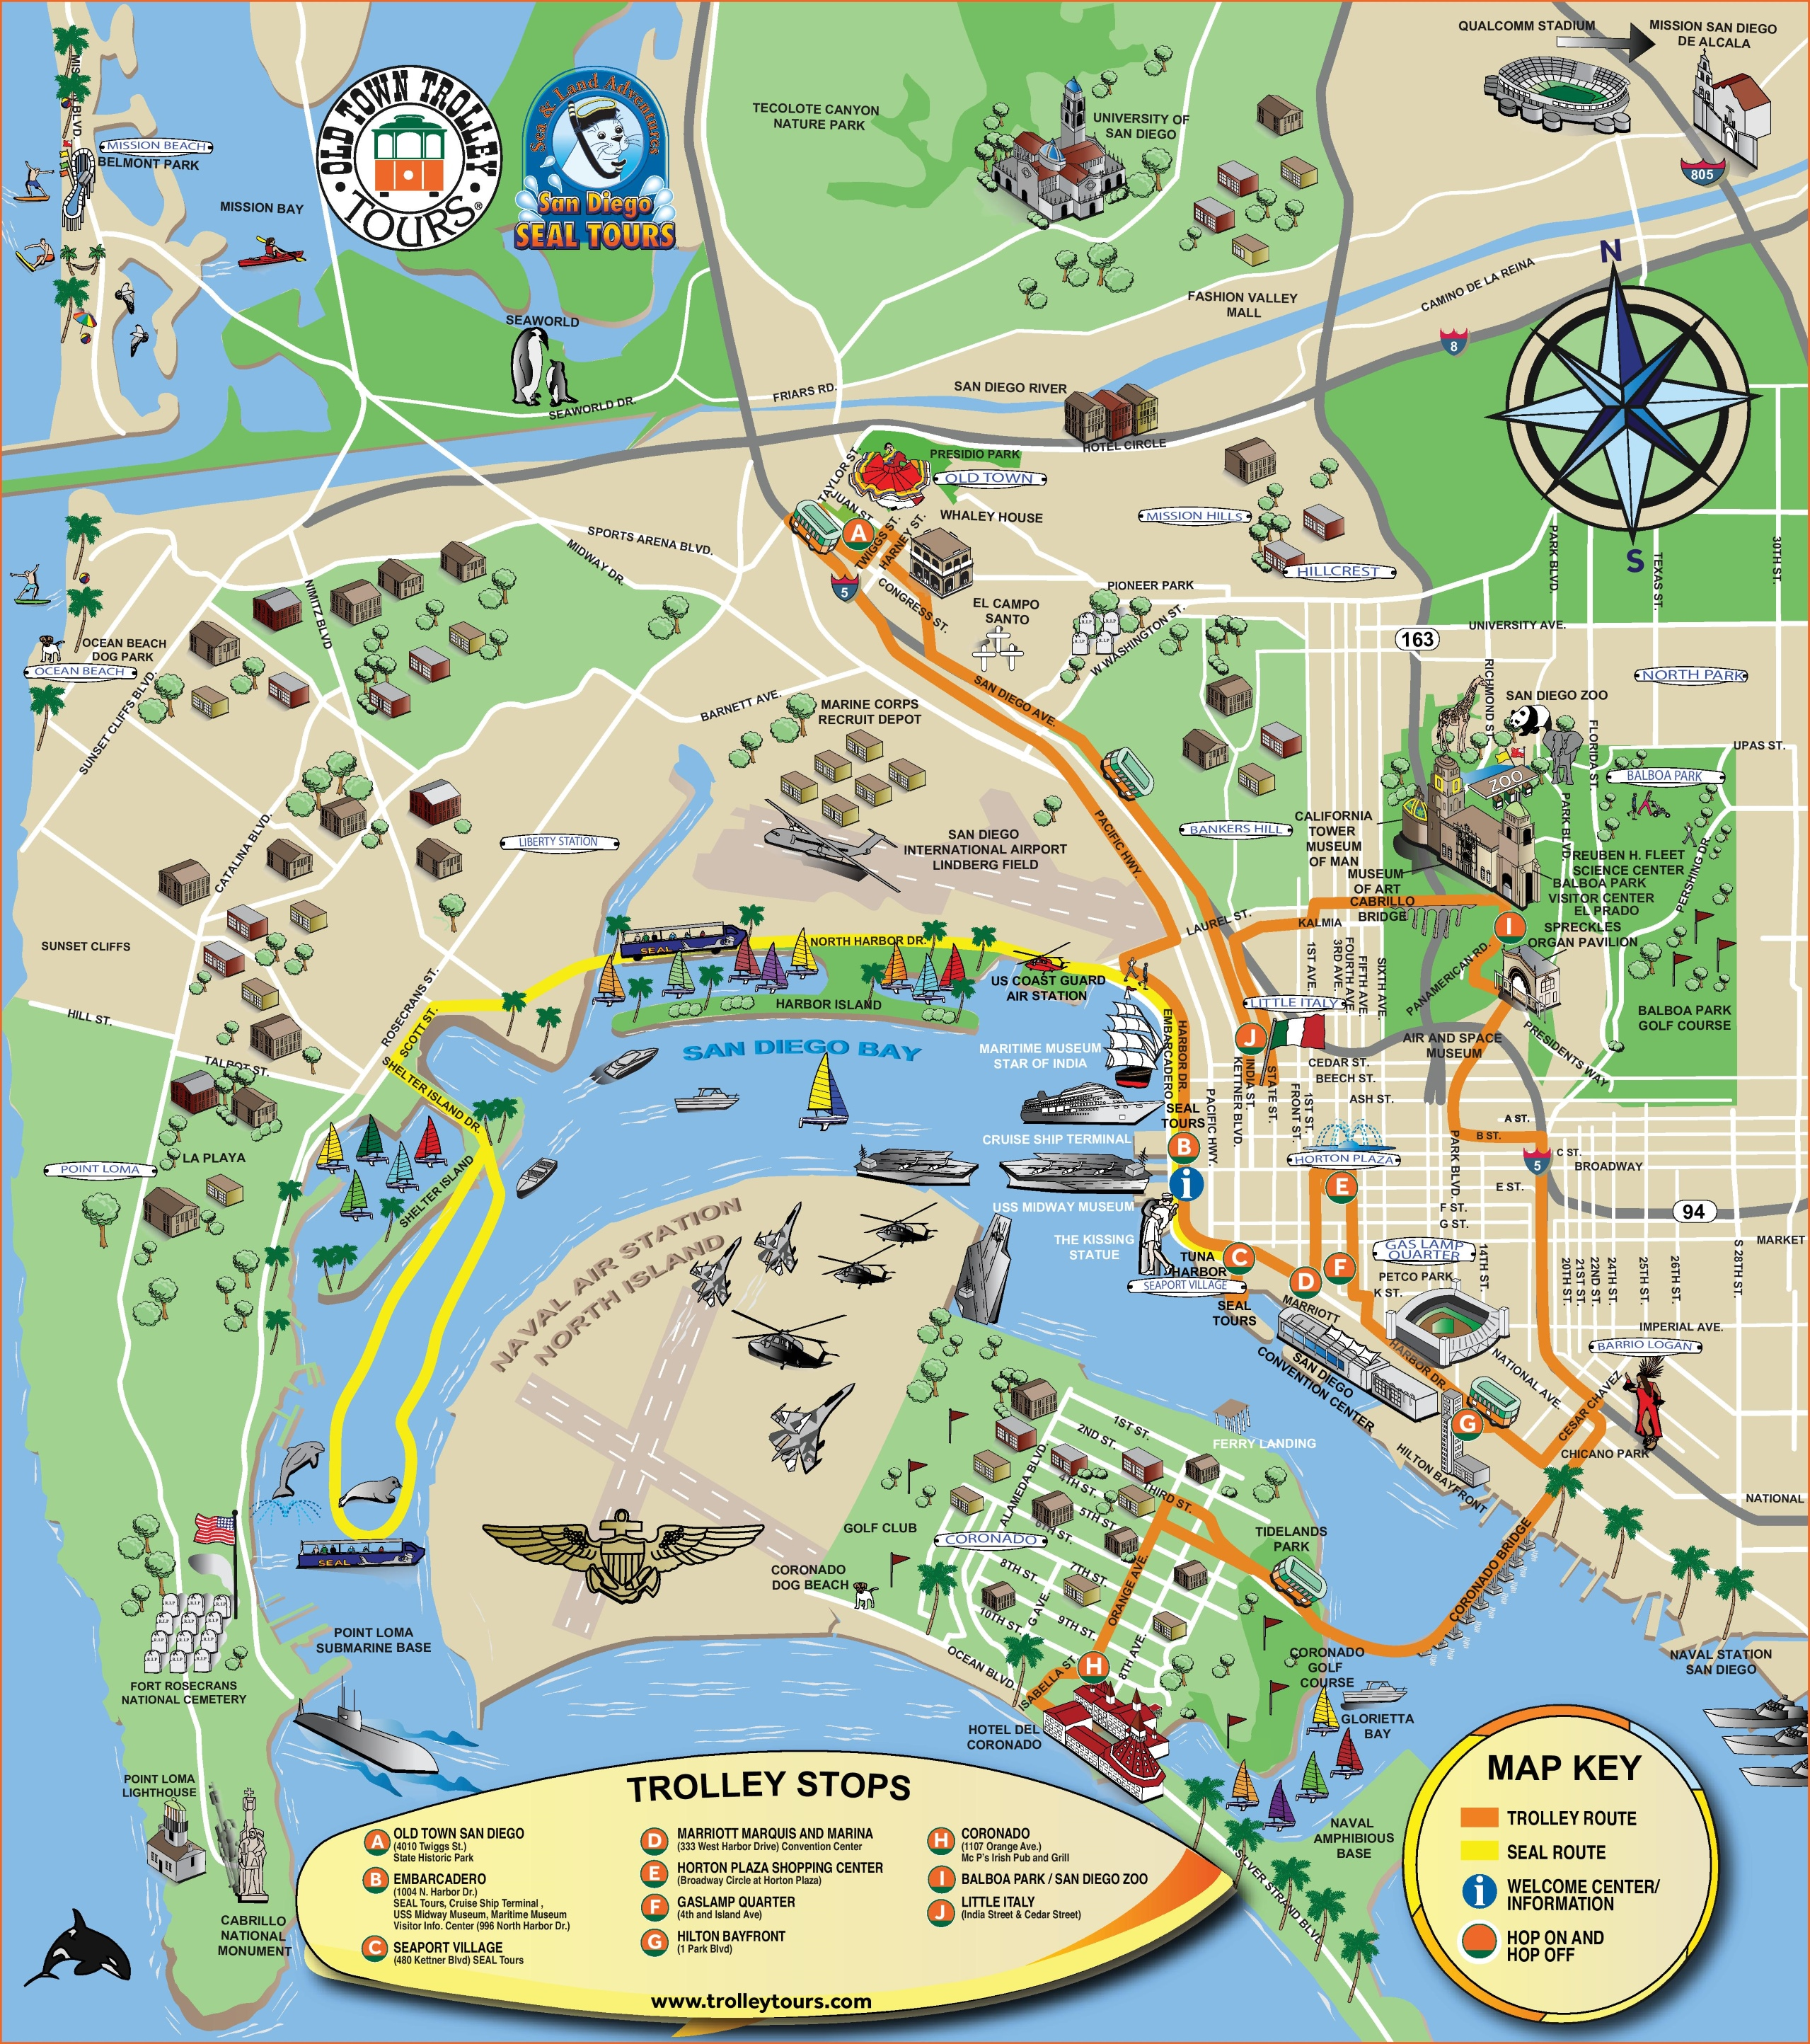 San Diego tourist attractions map – Virginia Tourist Attractions Map